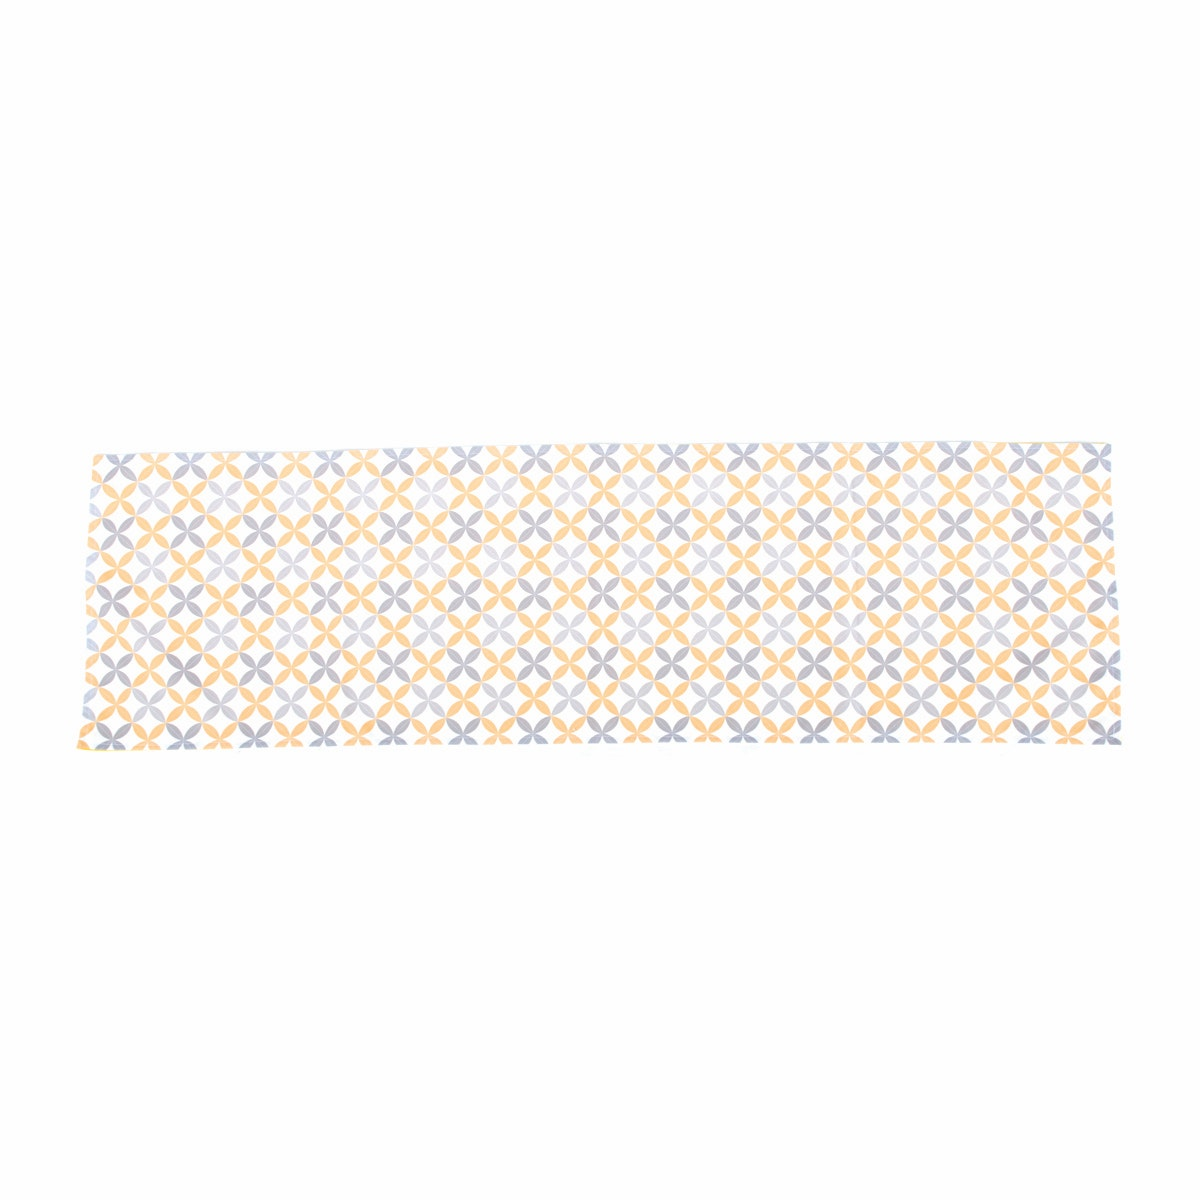 Glerry Home Decor Sunny Hues Table Runner 100x30cm